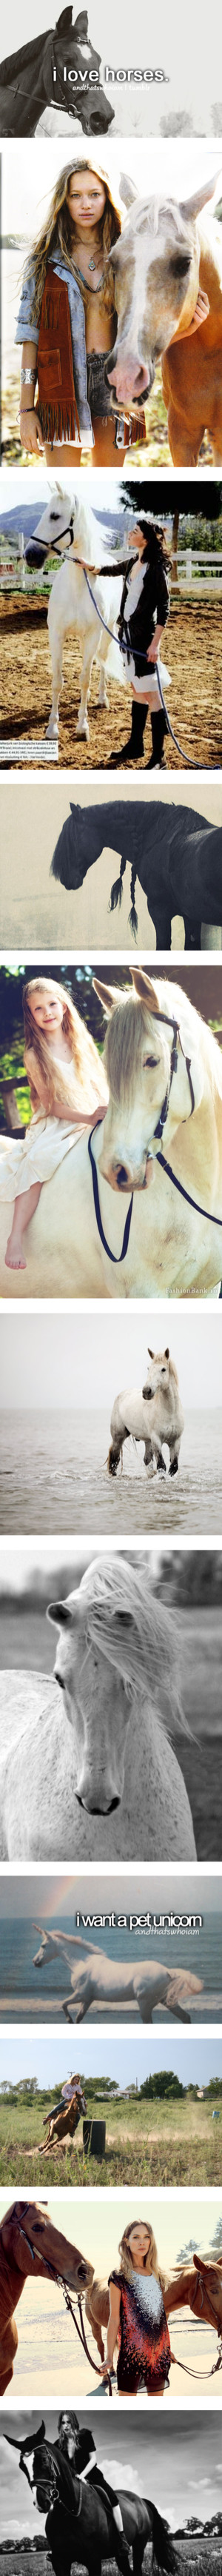 """I love Horses"" by friedii ❤ liked on Polyvore"